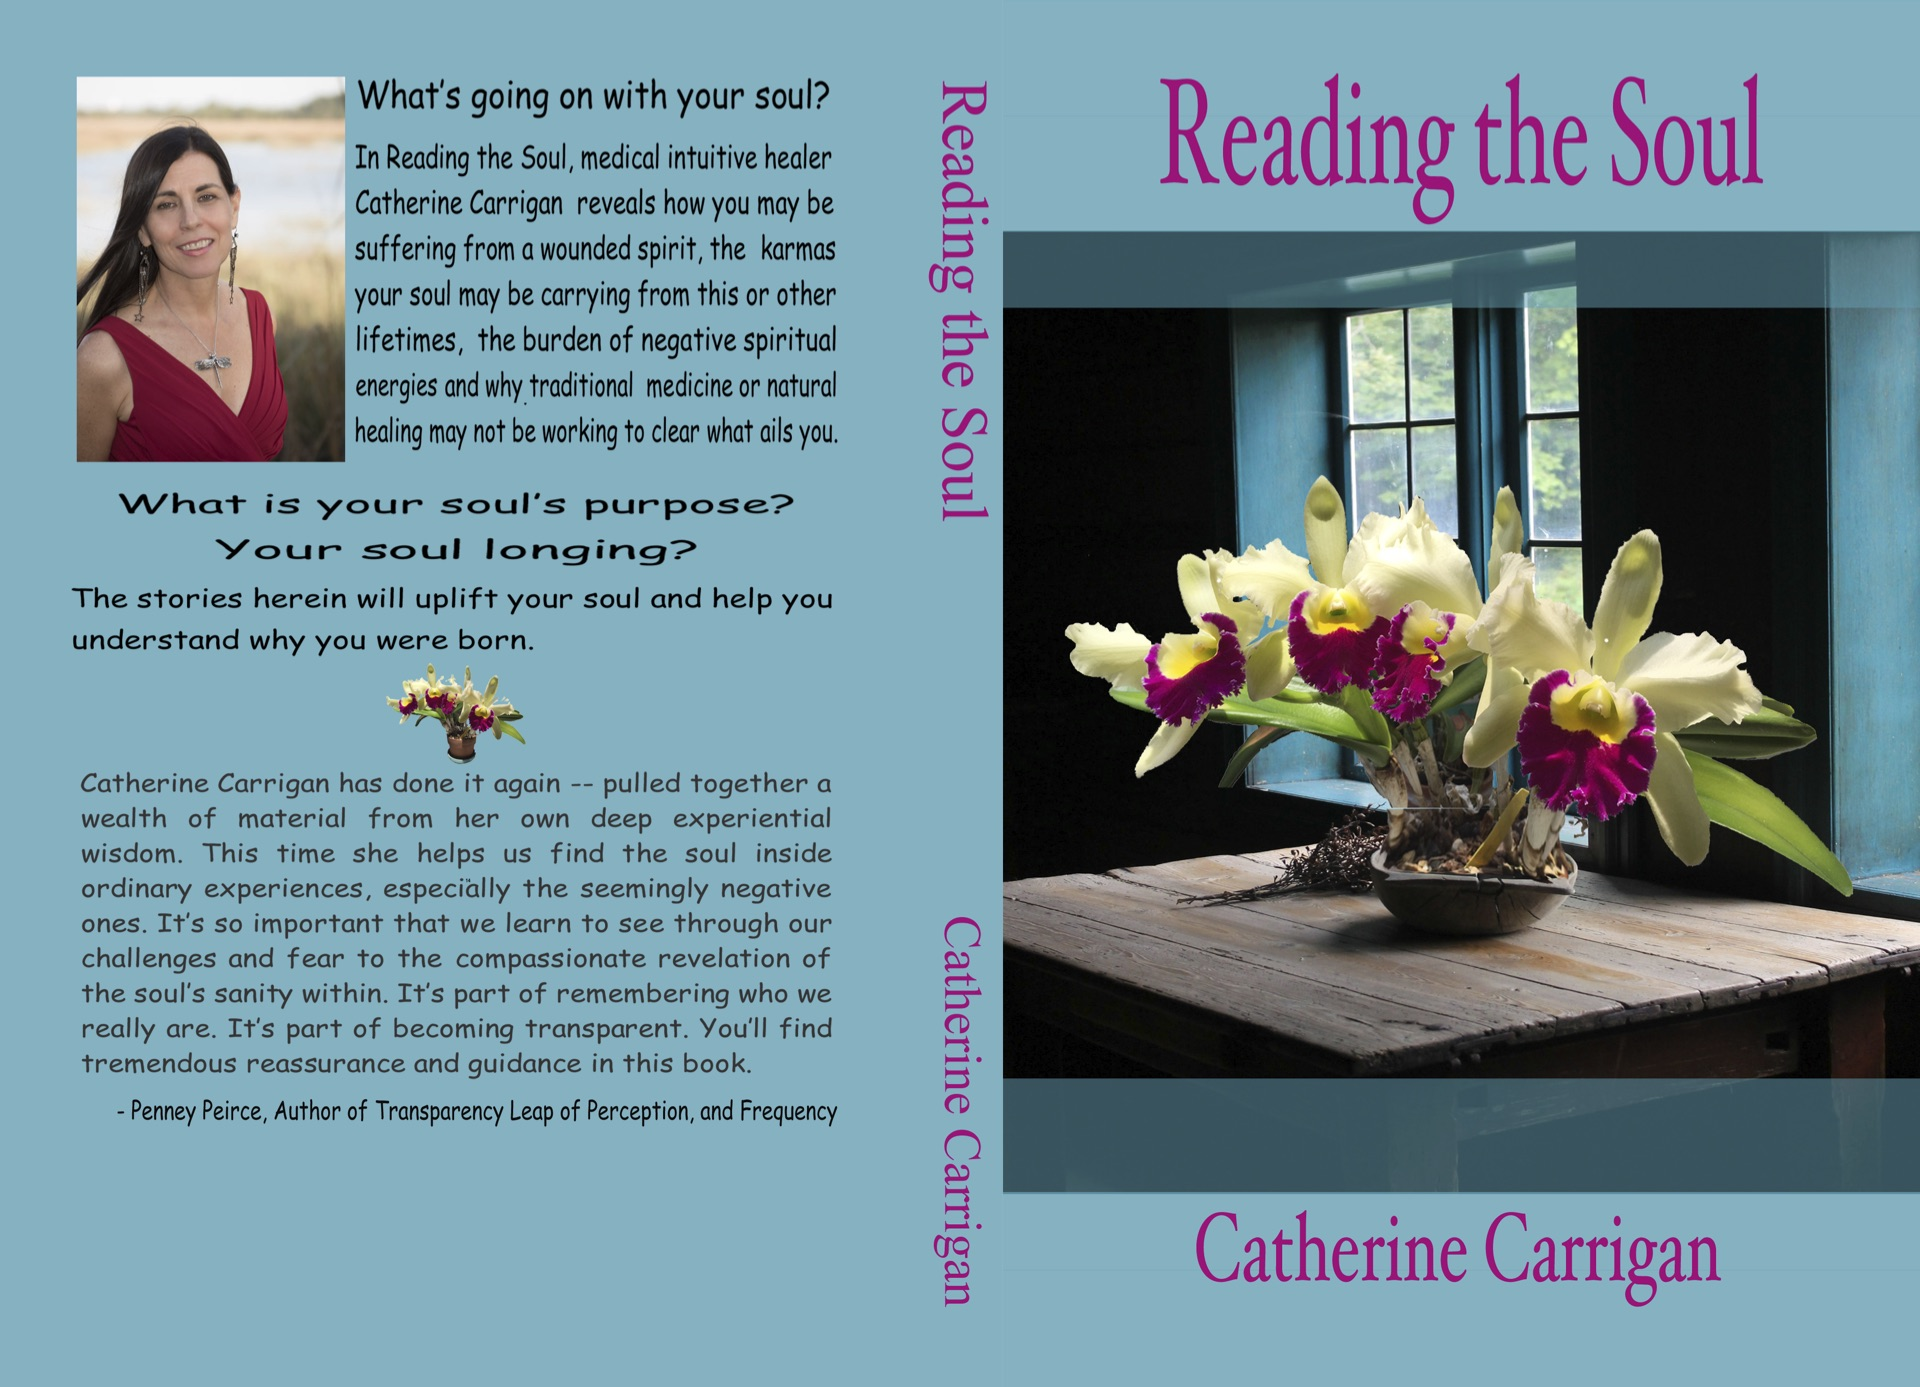 Reading the Soul by Catherine Carrigan